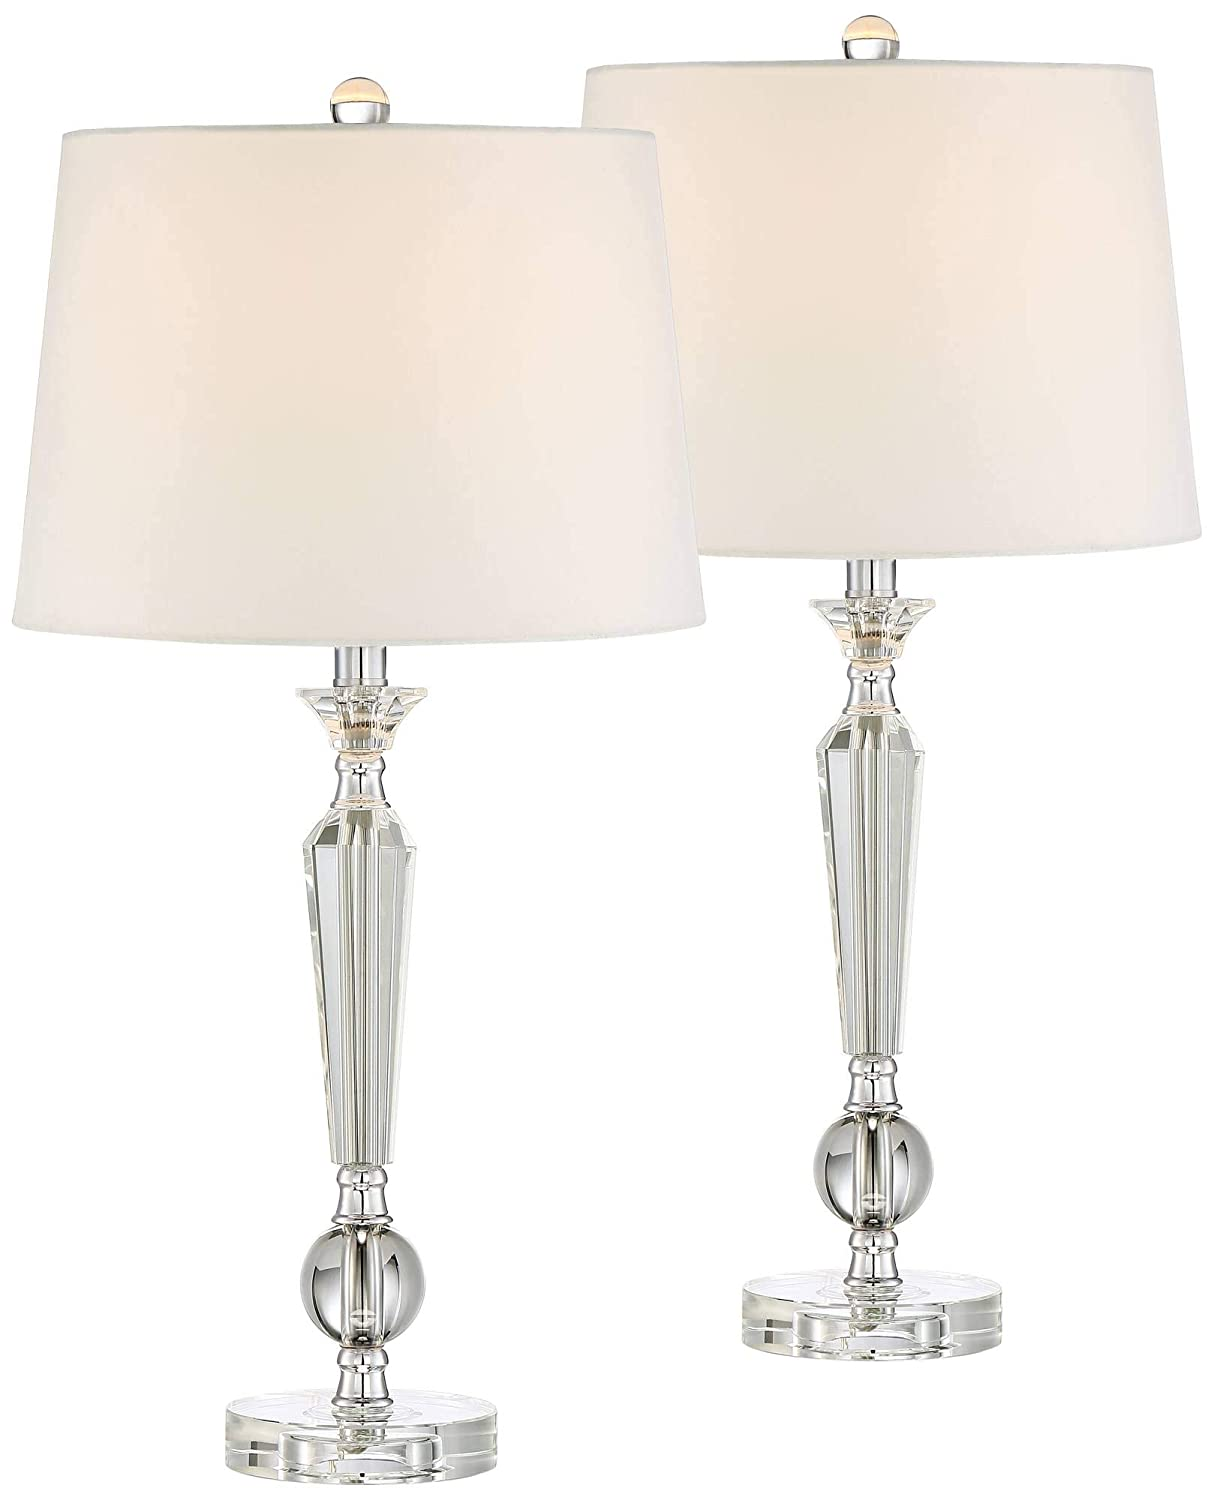 Jolie traditional table lamps set of 2 crystal candlestick off white drum shade for living room family bedroom vienna full spectrum amazon com